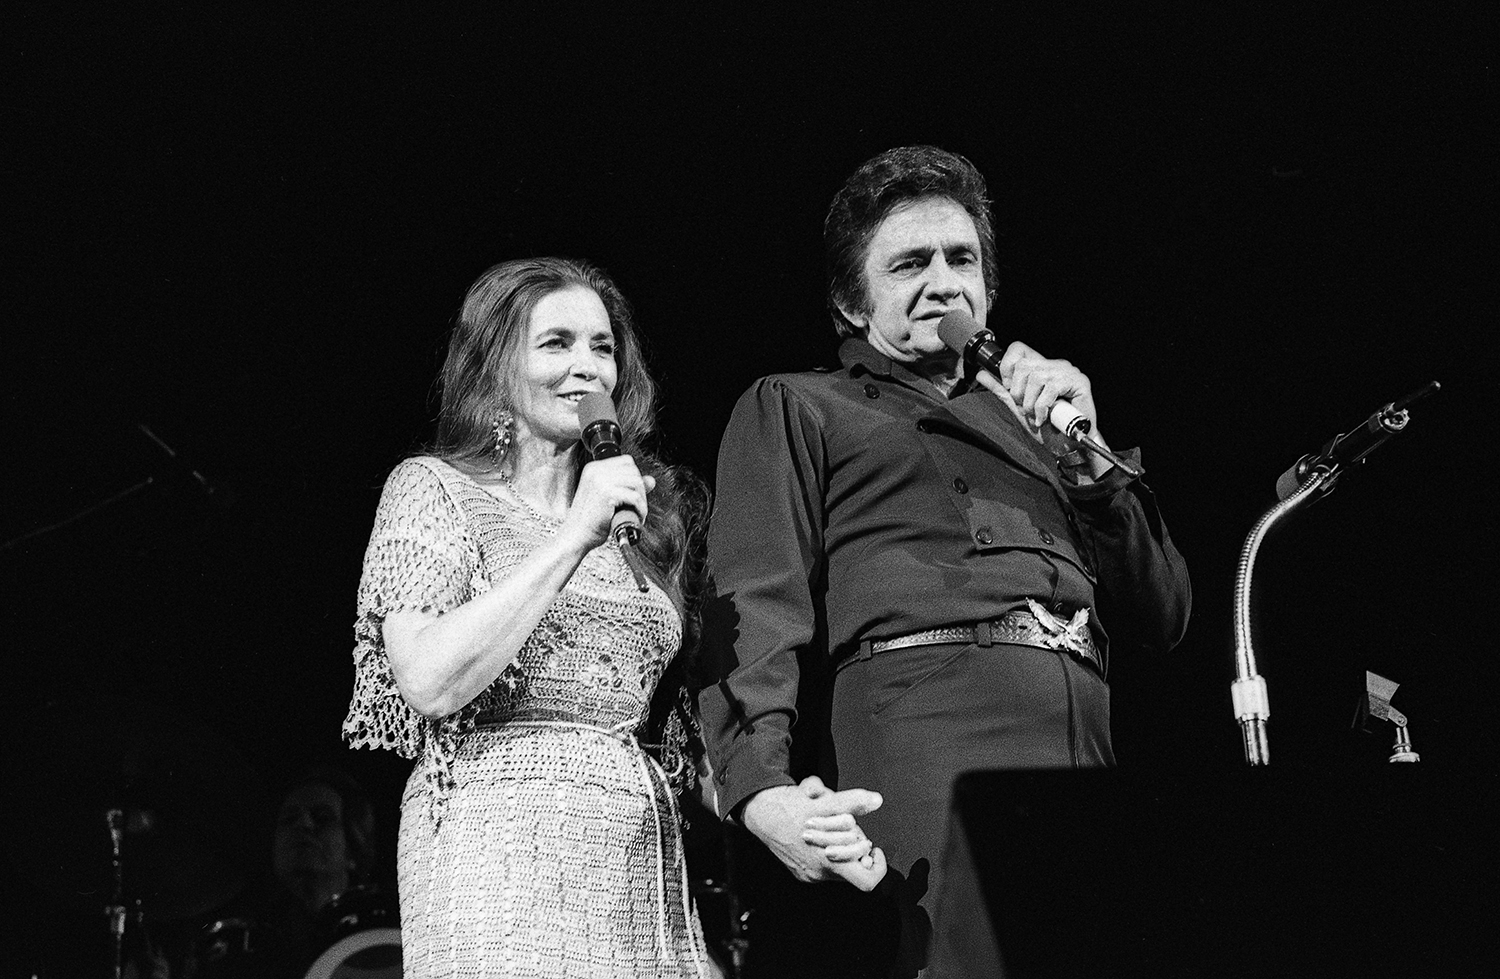 Johnny Cash and June Carter Cash in concert at the Prairie Capital Convention Center February 3, 1980. File/David Klobucar/The State Journal-Register